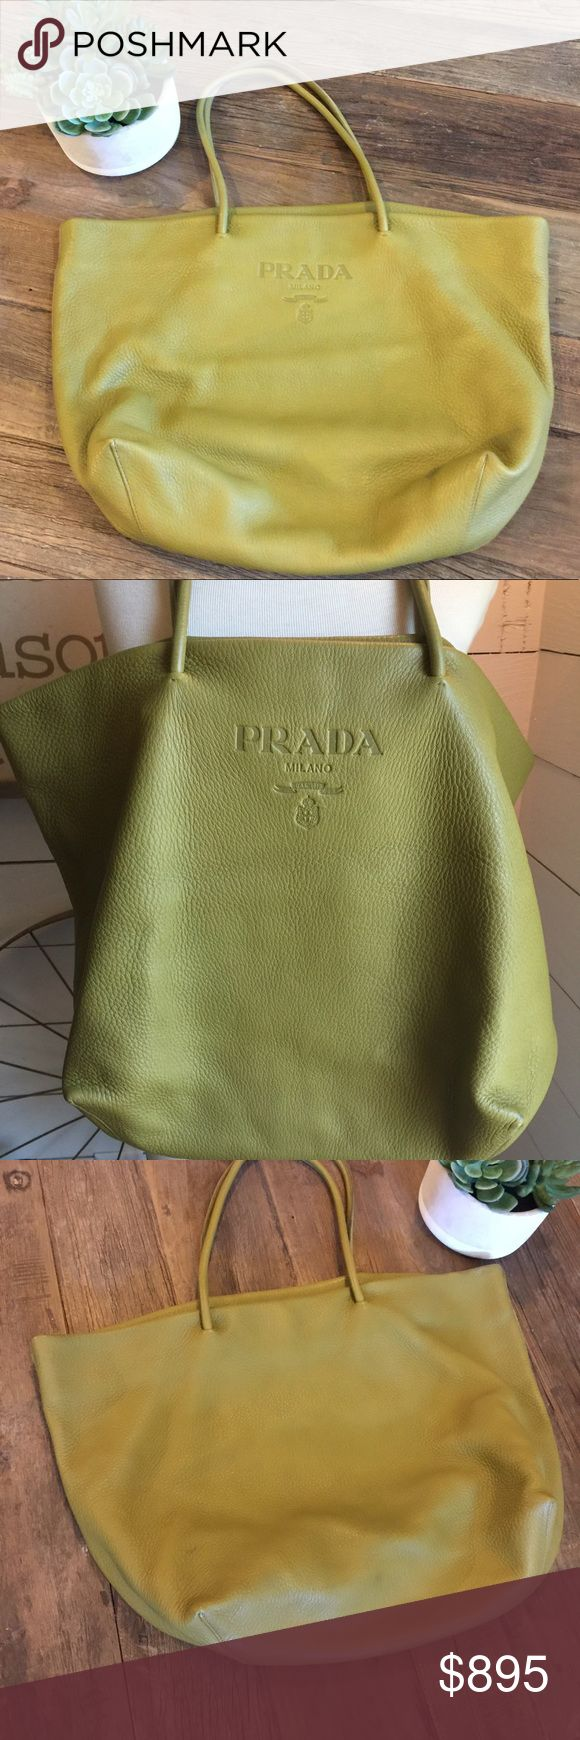 Prada soft green leather shoulder bag FABULOUS is the word to describe this bag. This gorgeous green and super soft leather Prada bag goes with just about anything. I never thought green could be so neutral...it is in great preowned condition with a couple of marks on the back and bottom edges. Barely noticeable but shown on pictures. Comes with its dust bag. Prada Bags Shoulder Bags